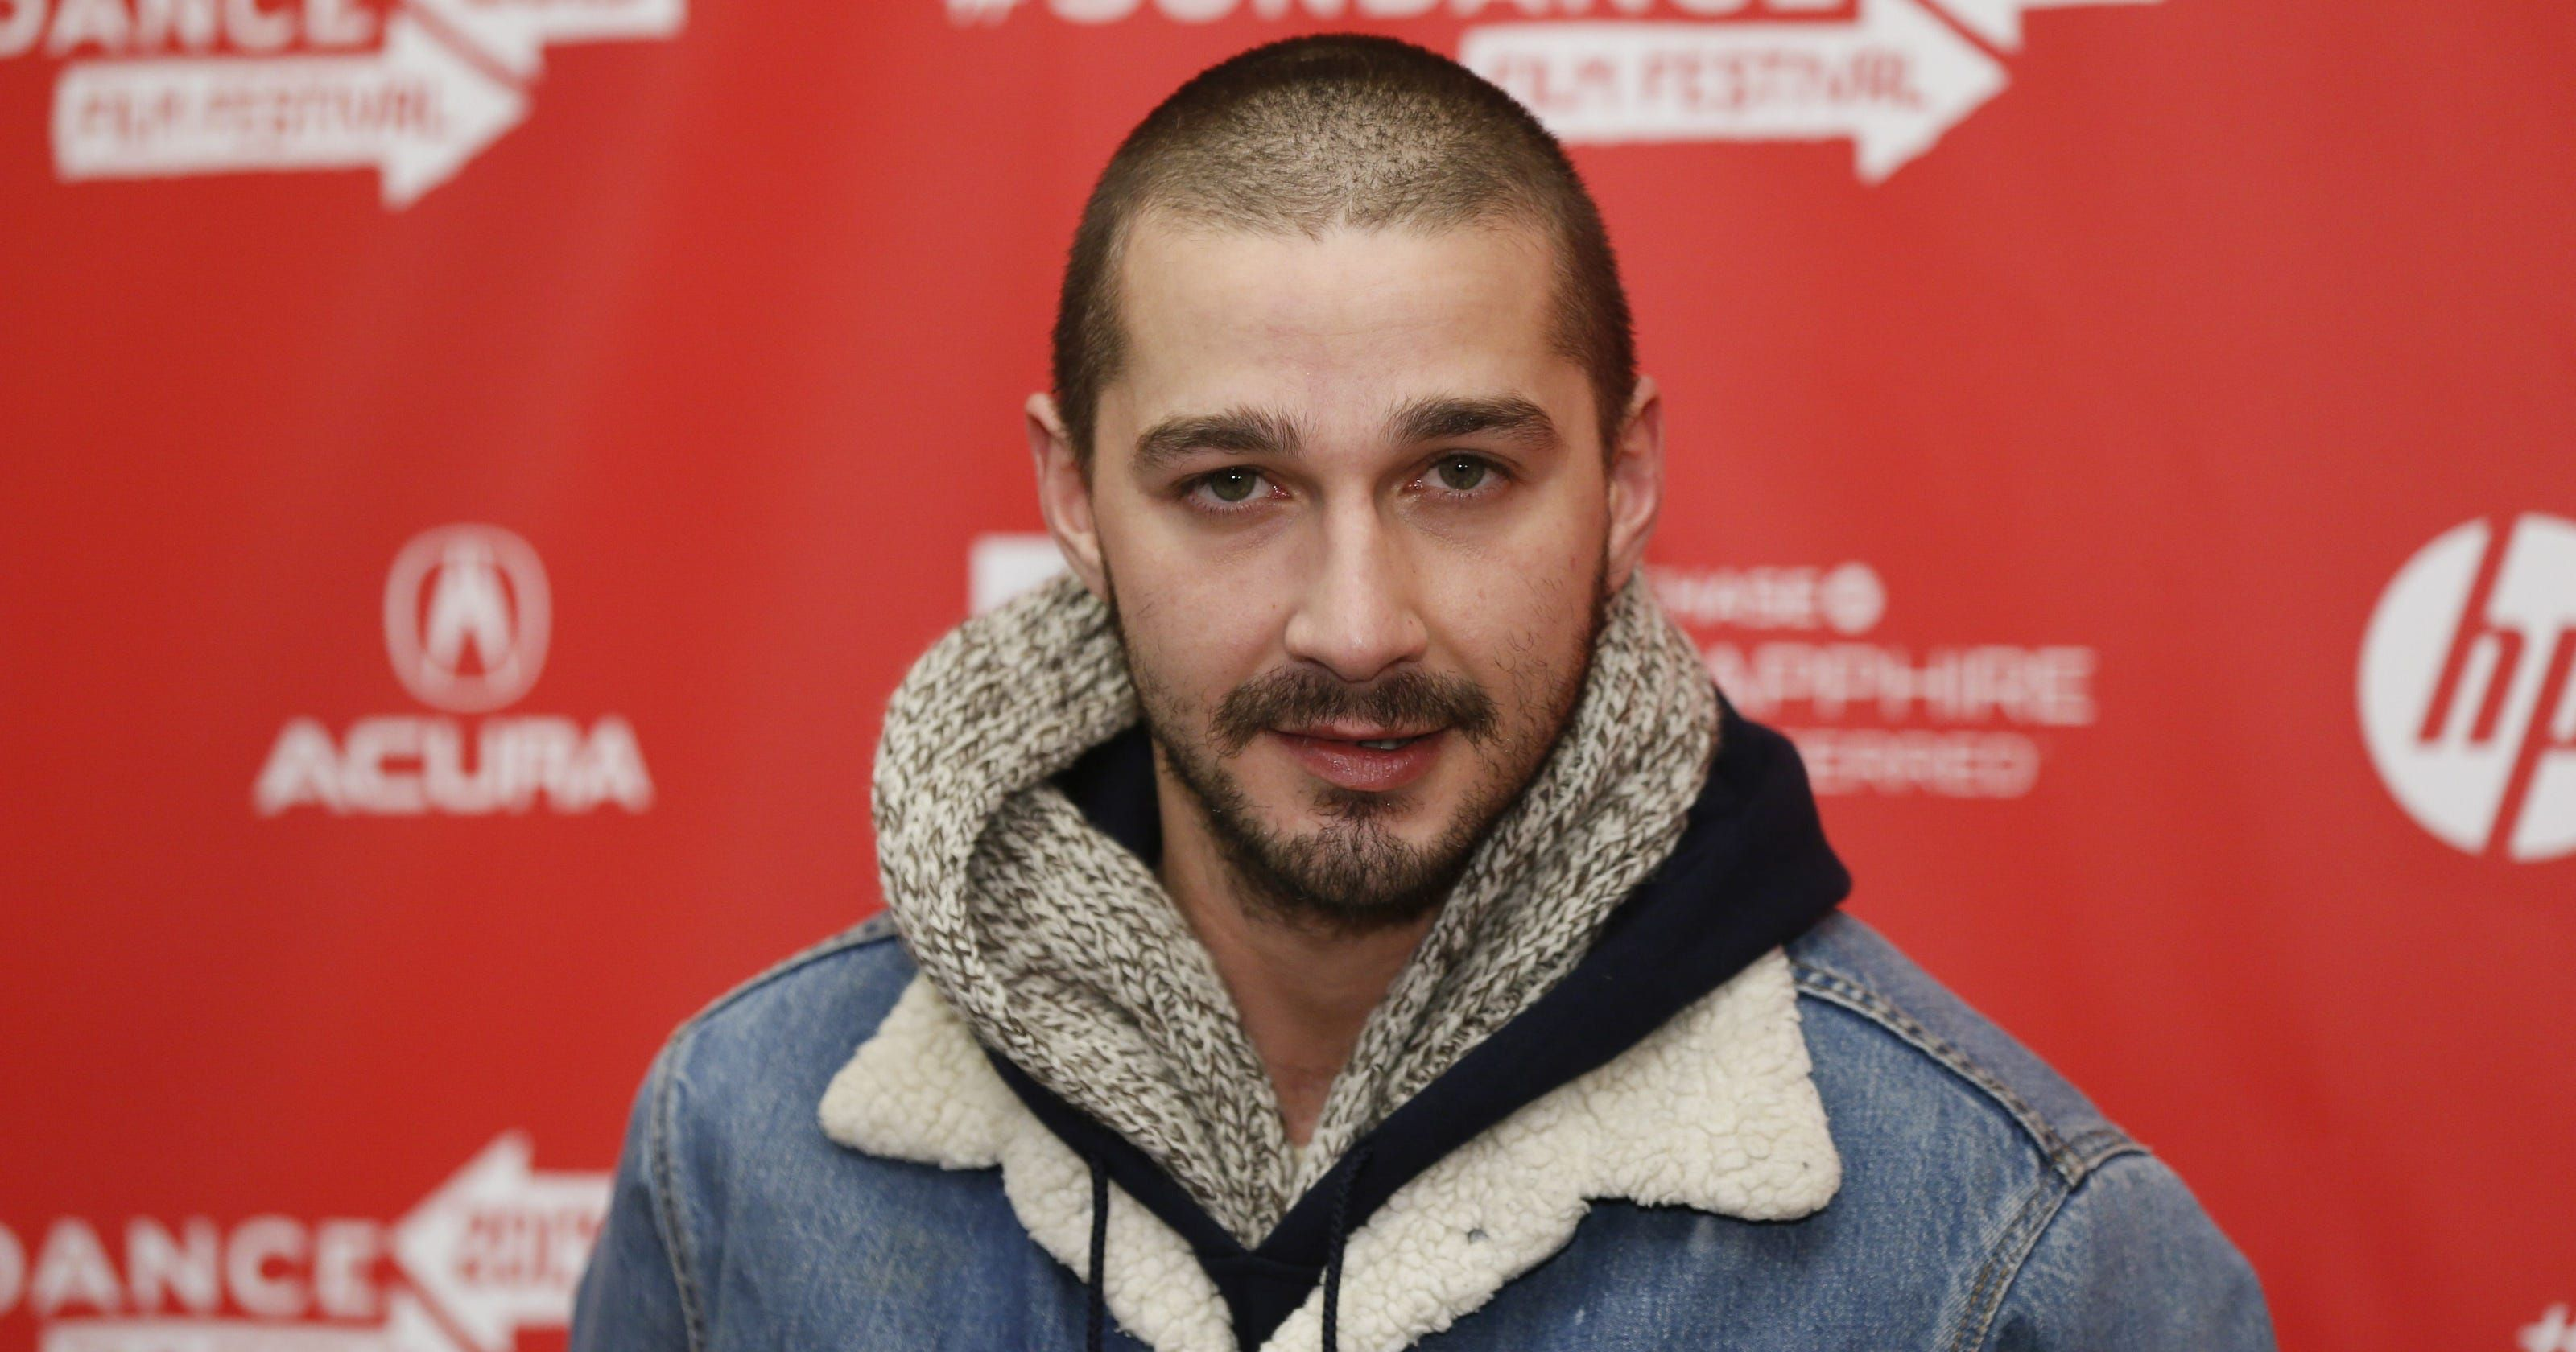 Pin by T on Icons Shia labeouf, Fashion, Celebrities